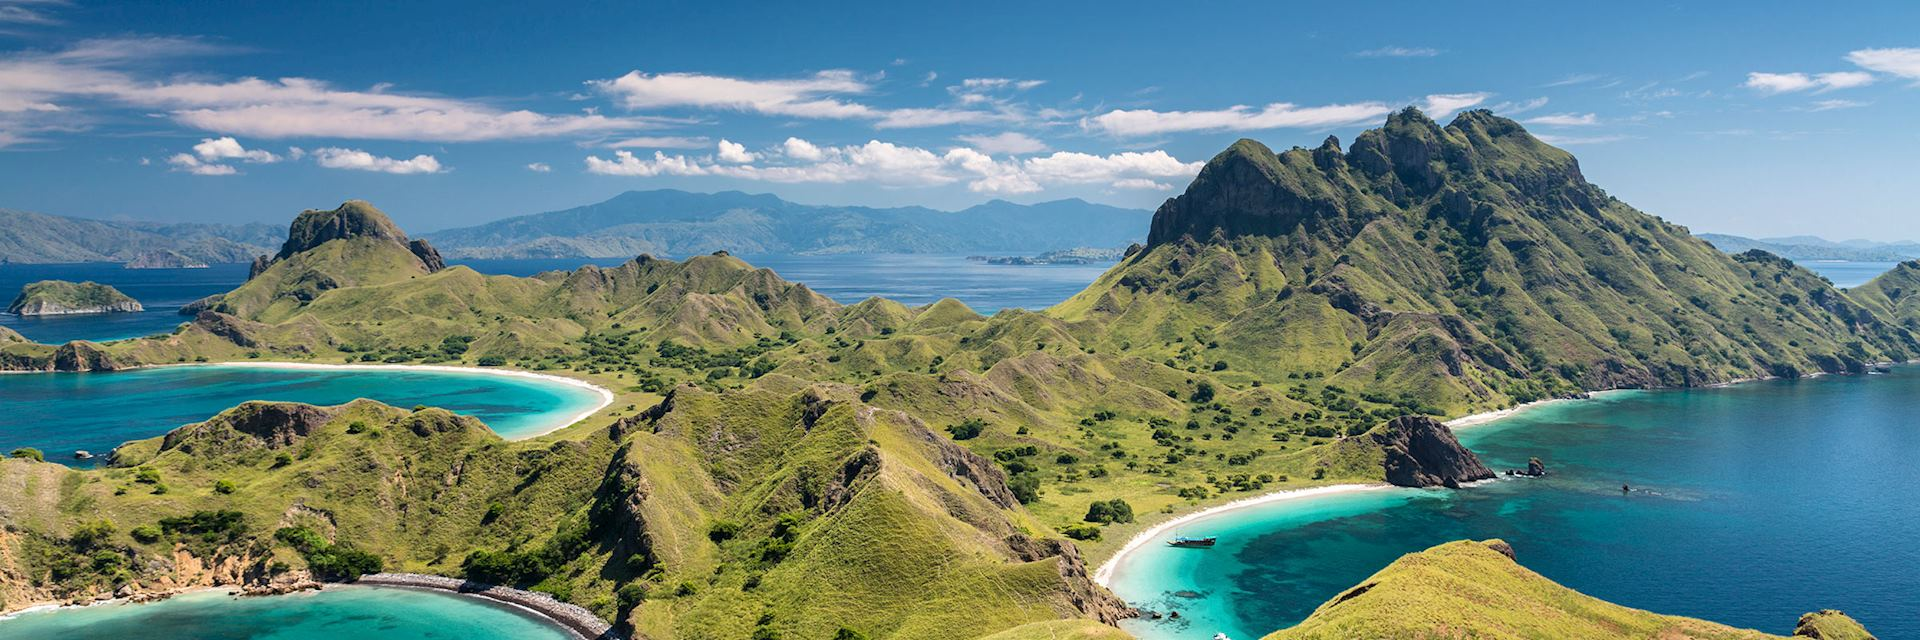 Mountain range in Komodo National Park